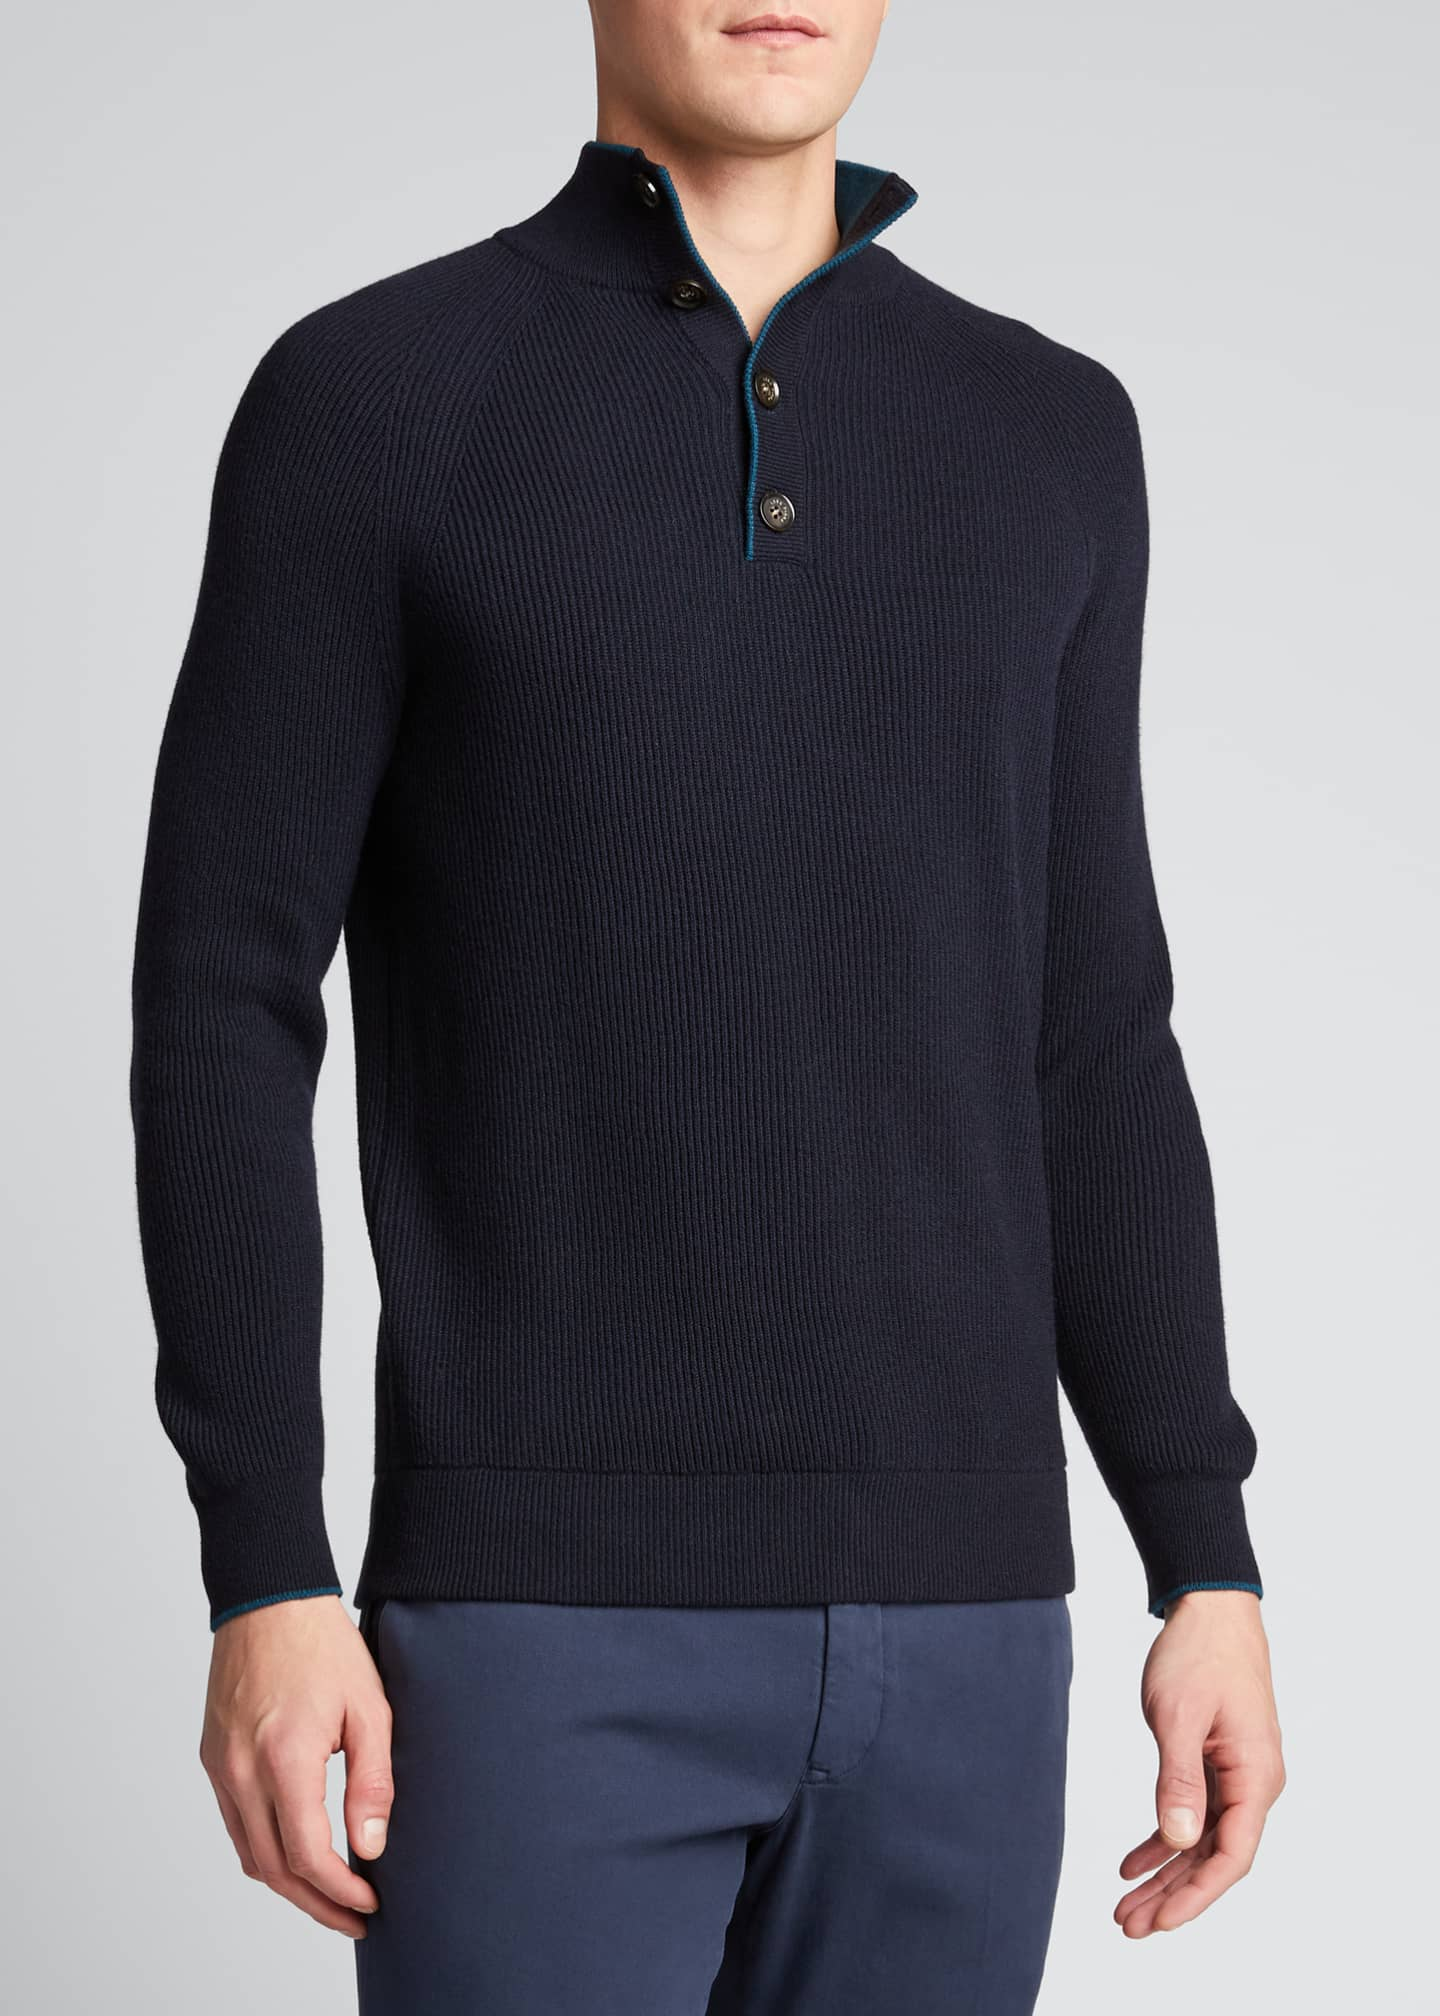 Image 3 of 5: Men's Riverside Mezzocolo Cashmere Sweater